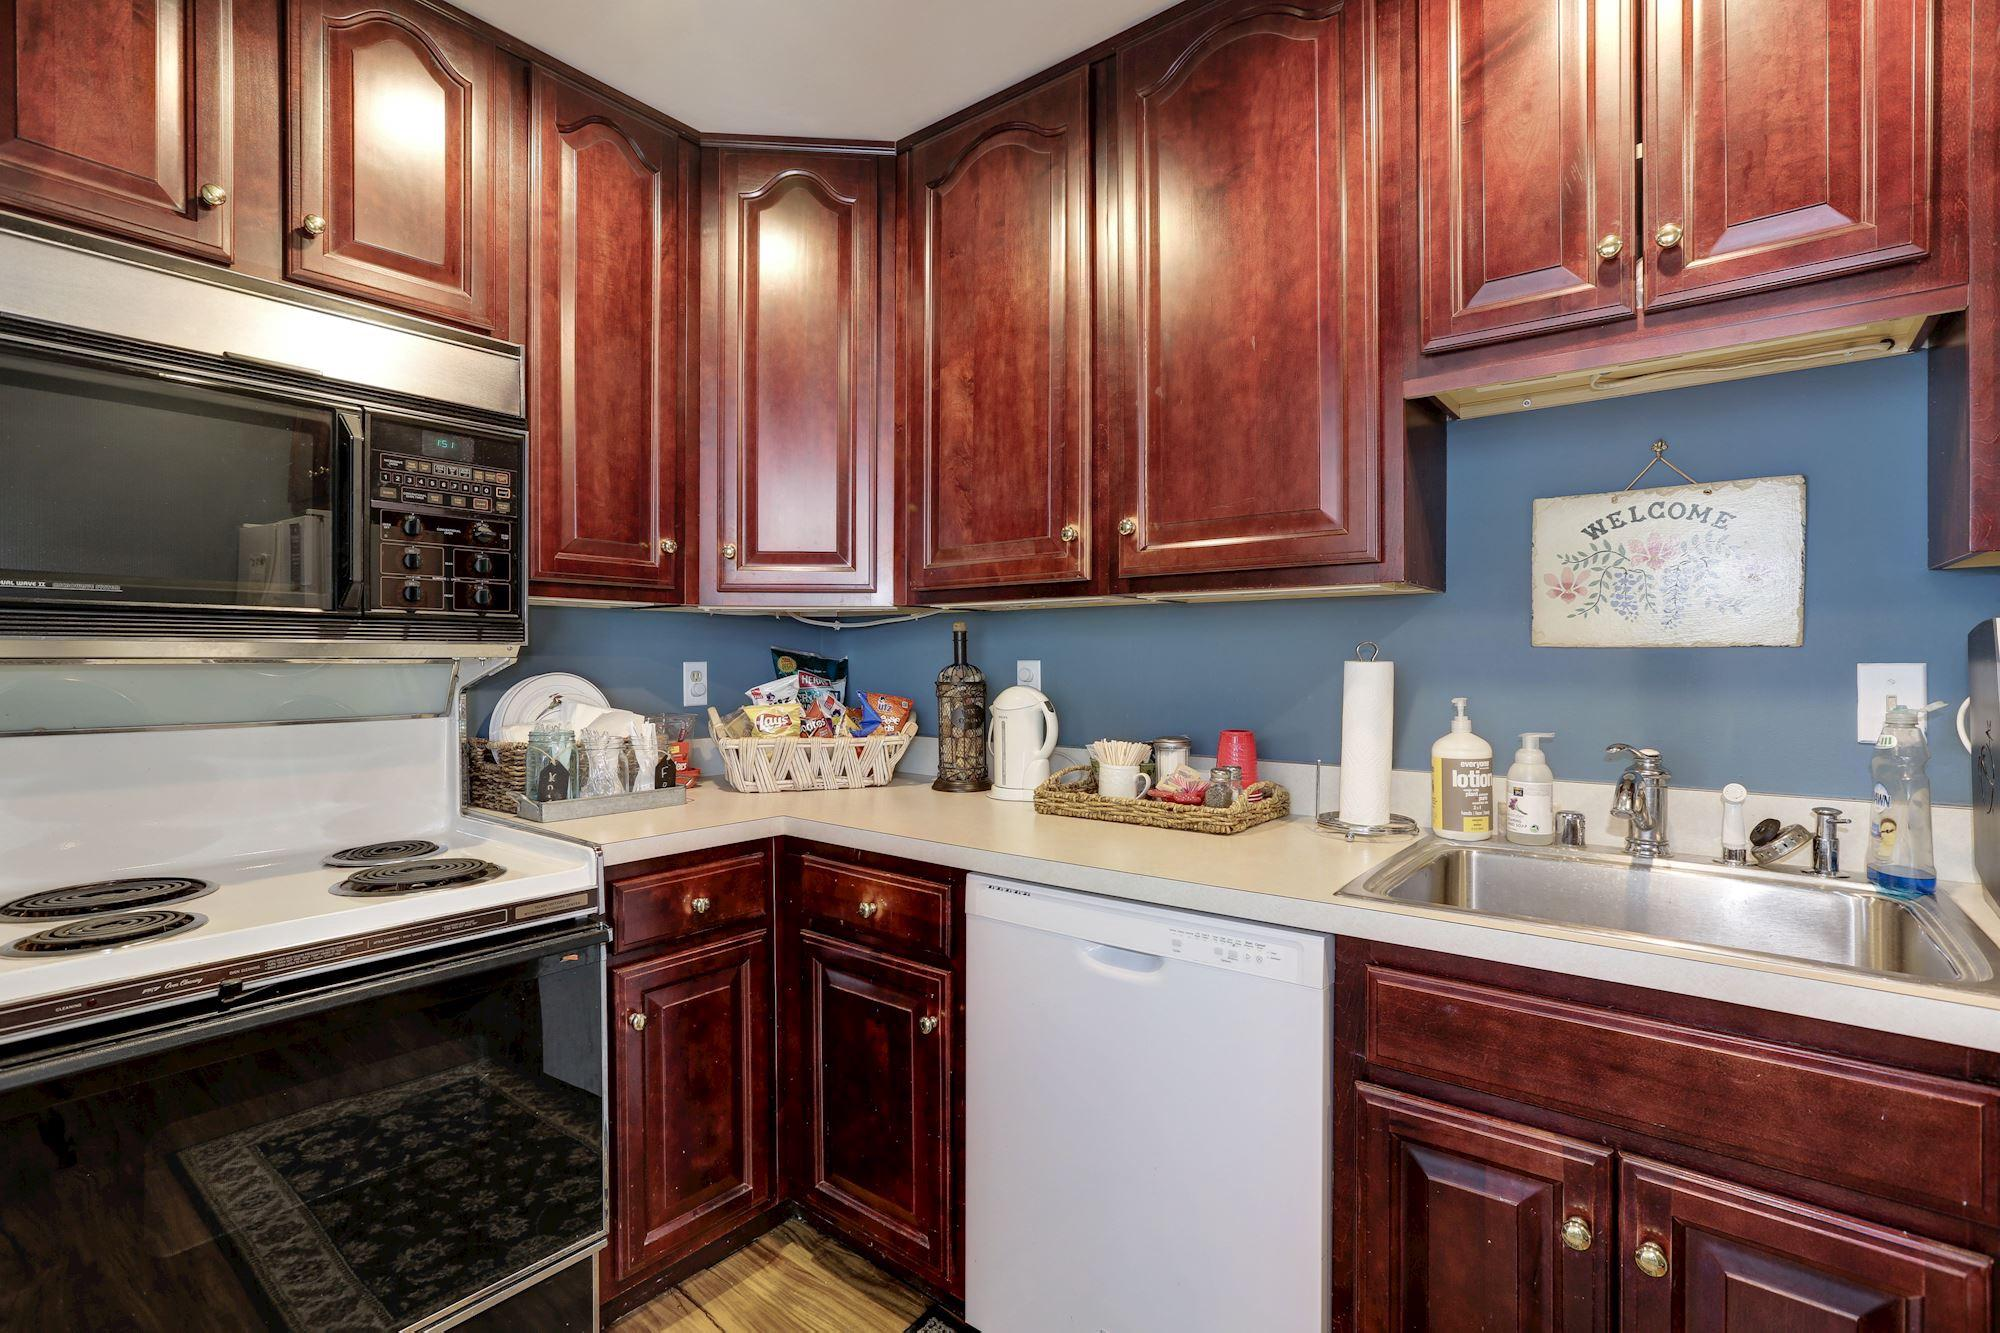 Additional photo for property listing at 110 Prince George Street 110 Prince George Street Annapolis, Maryland 21401 United States